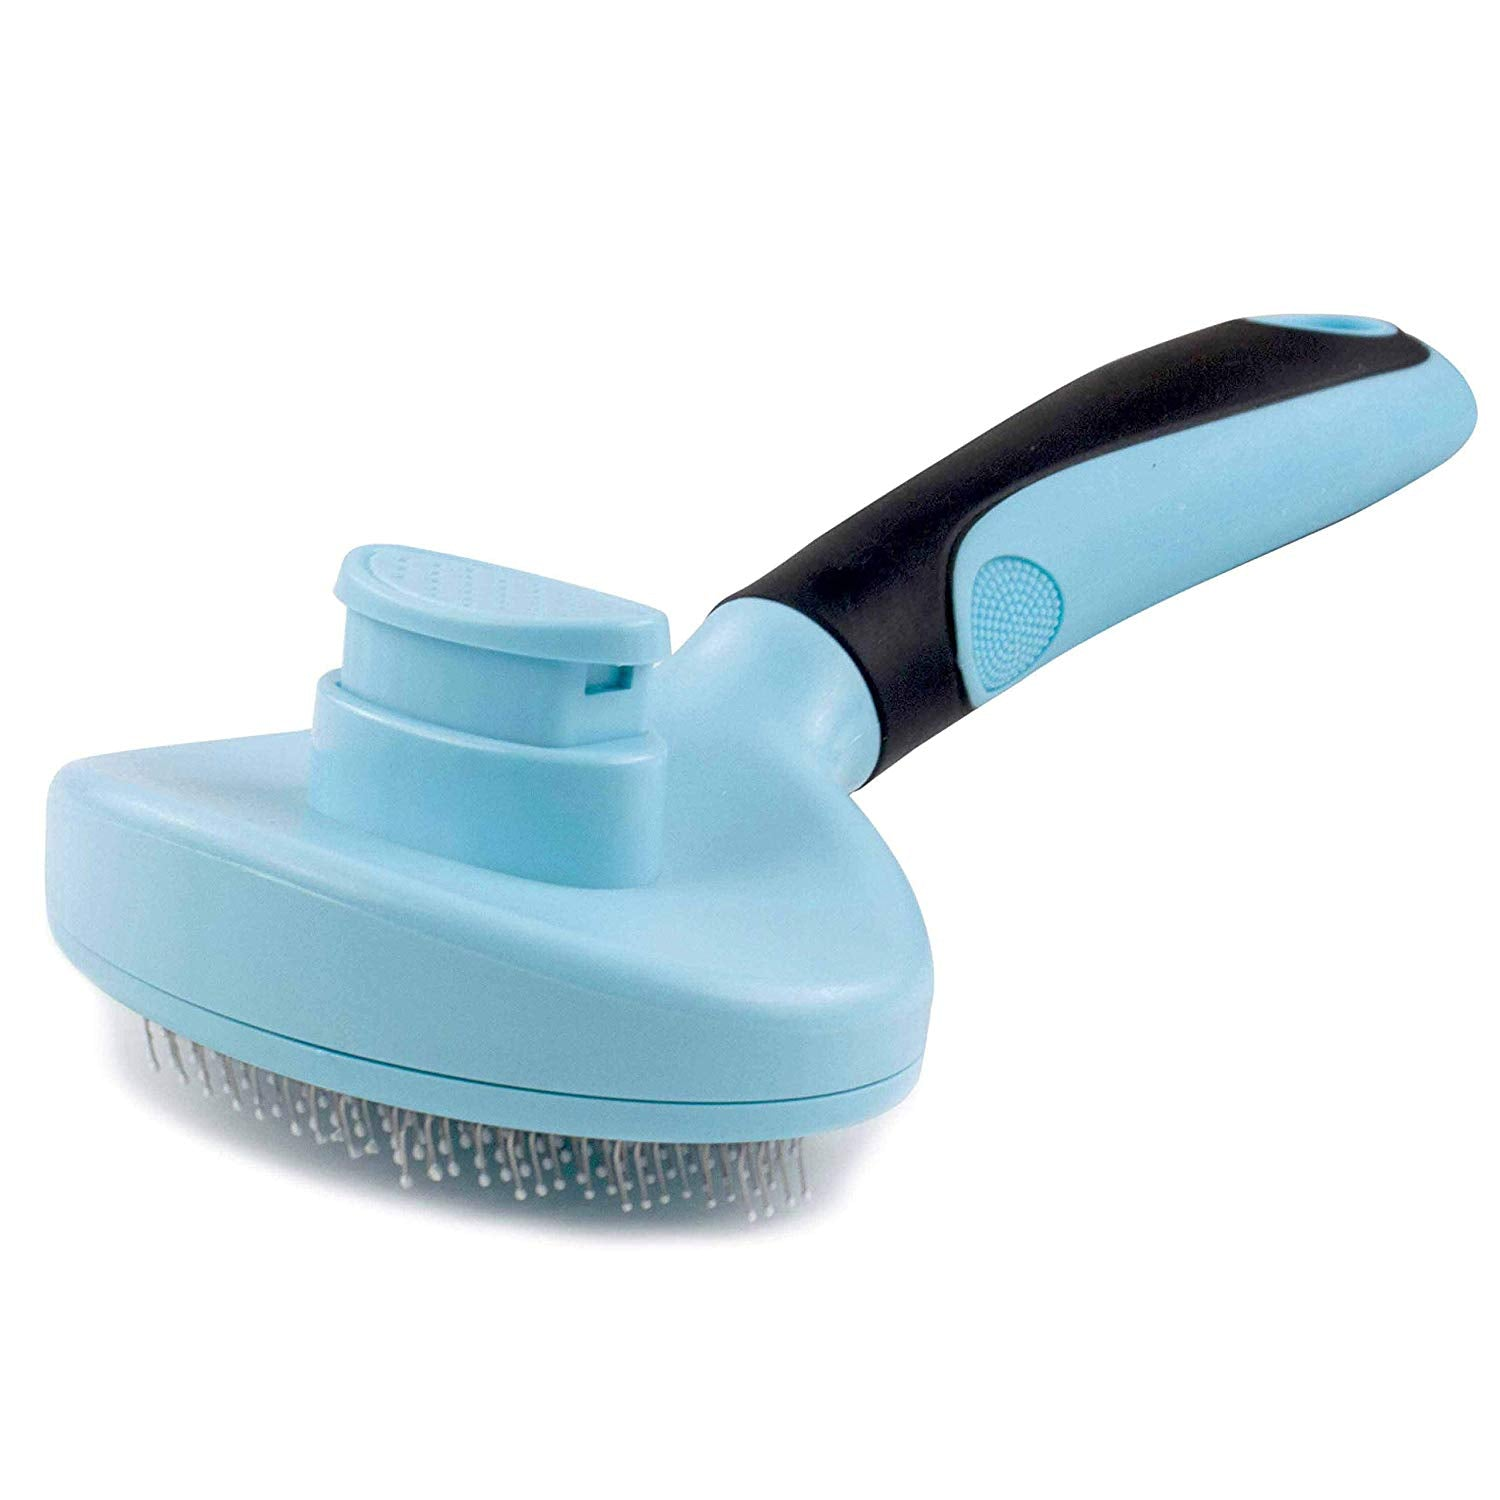 LLESS Dog Brush & Cat Brush & Pet Brush - Quick Soft Self Cleaning Brush - for Long/Short Hair - Pet Shedding Grooming Tools - Idesl for Everyday Brushing or Sensitive Skin Blue & Black